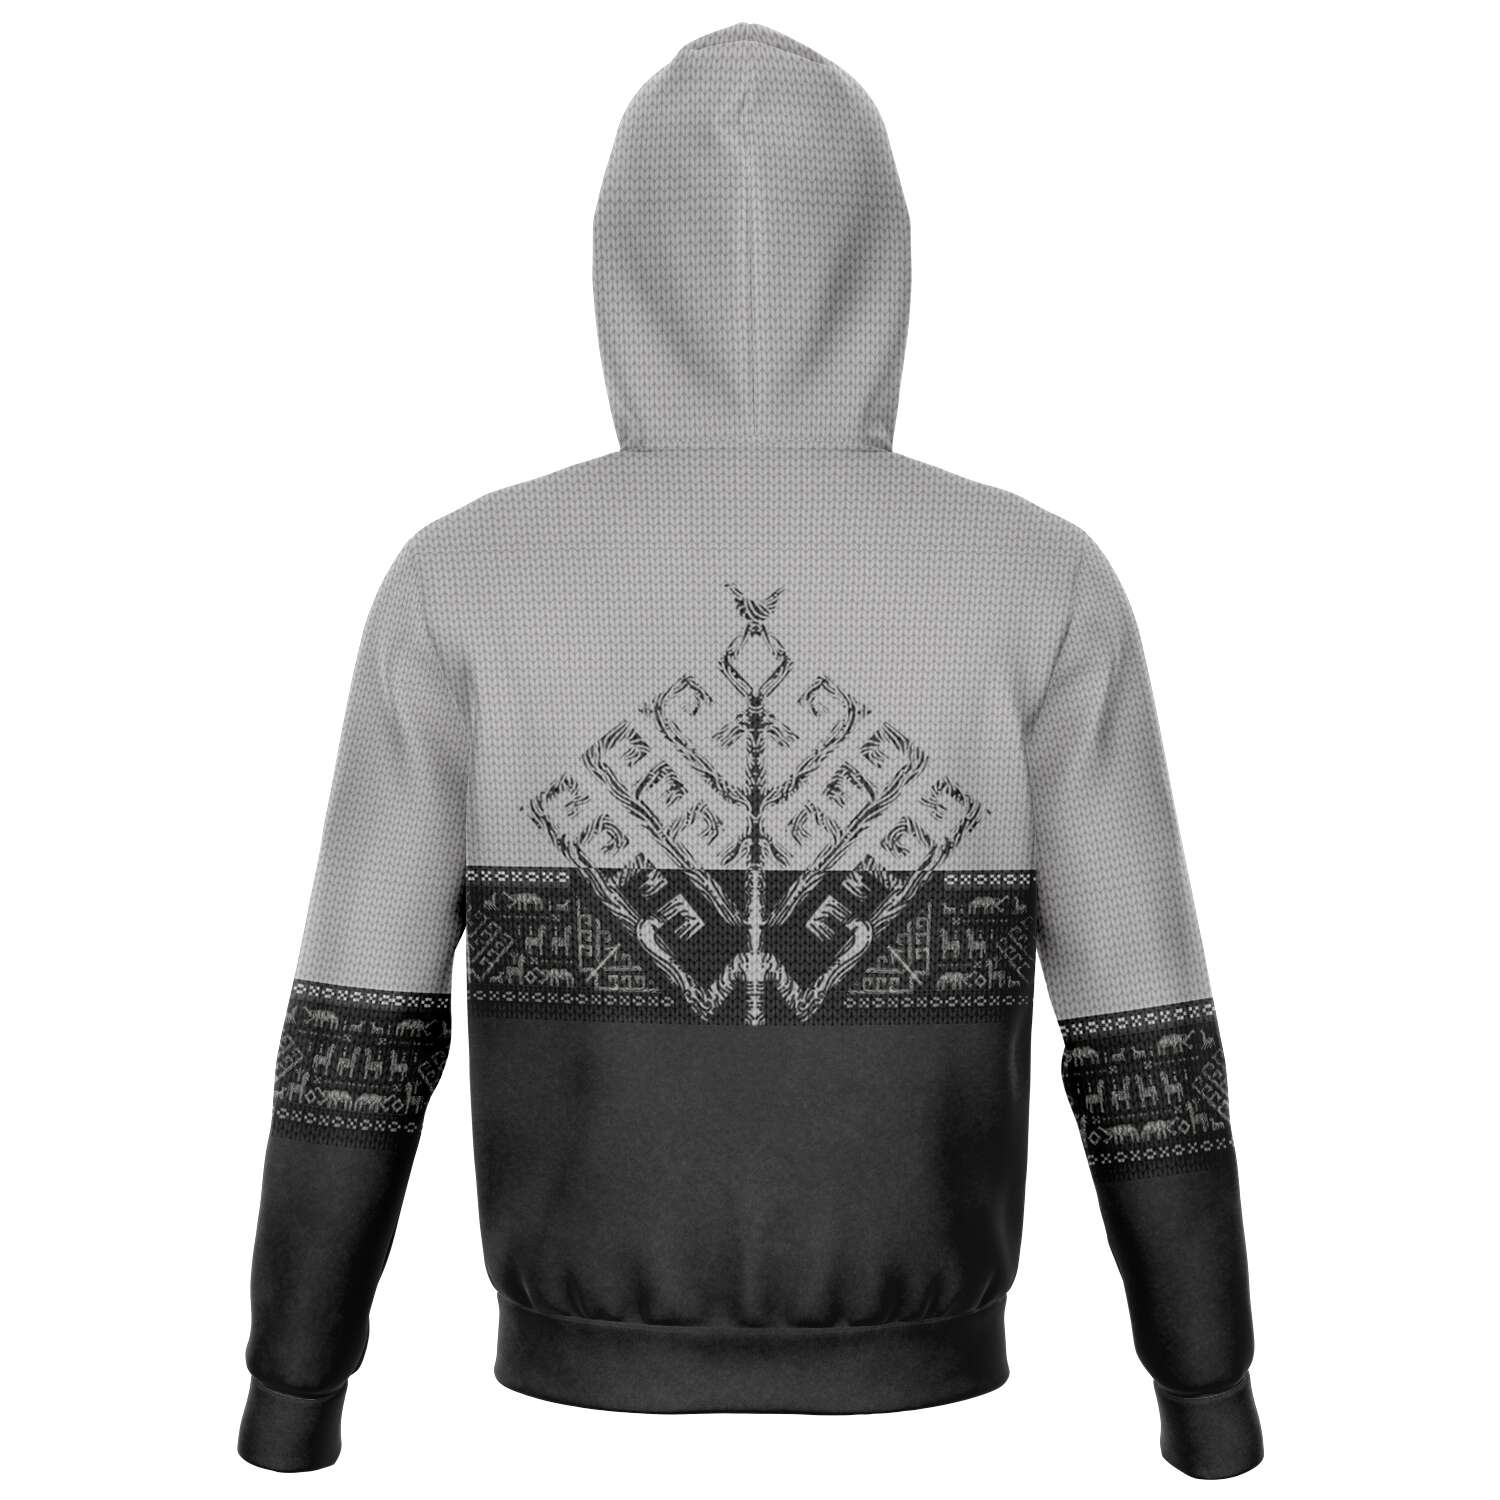 Folk Yggdrasil Premium Zip Hoodie for Vikings & Shieldmaidens